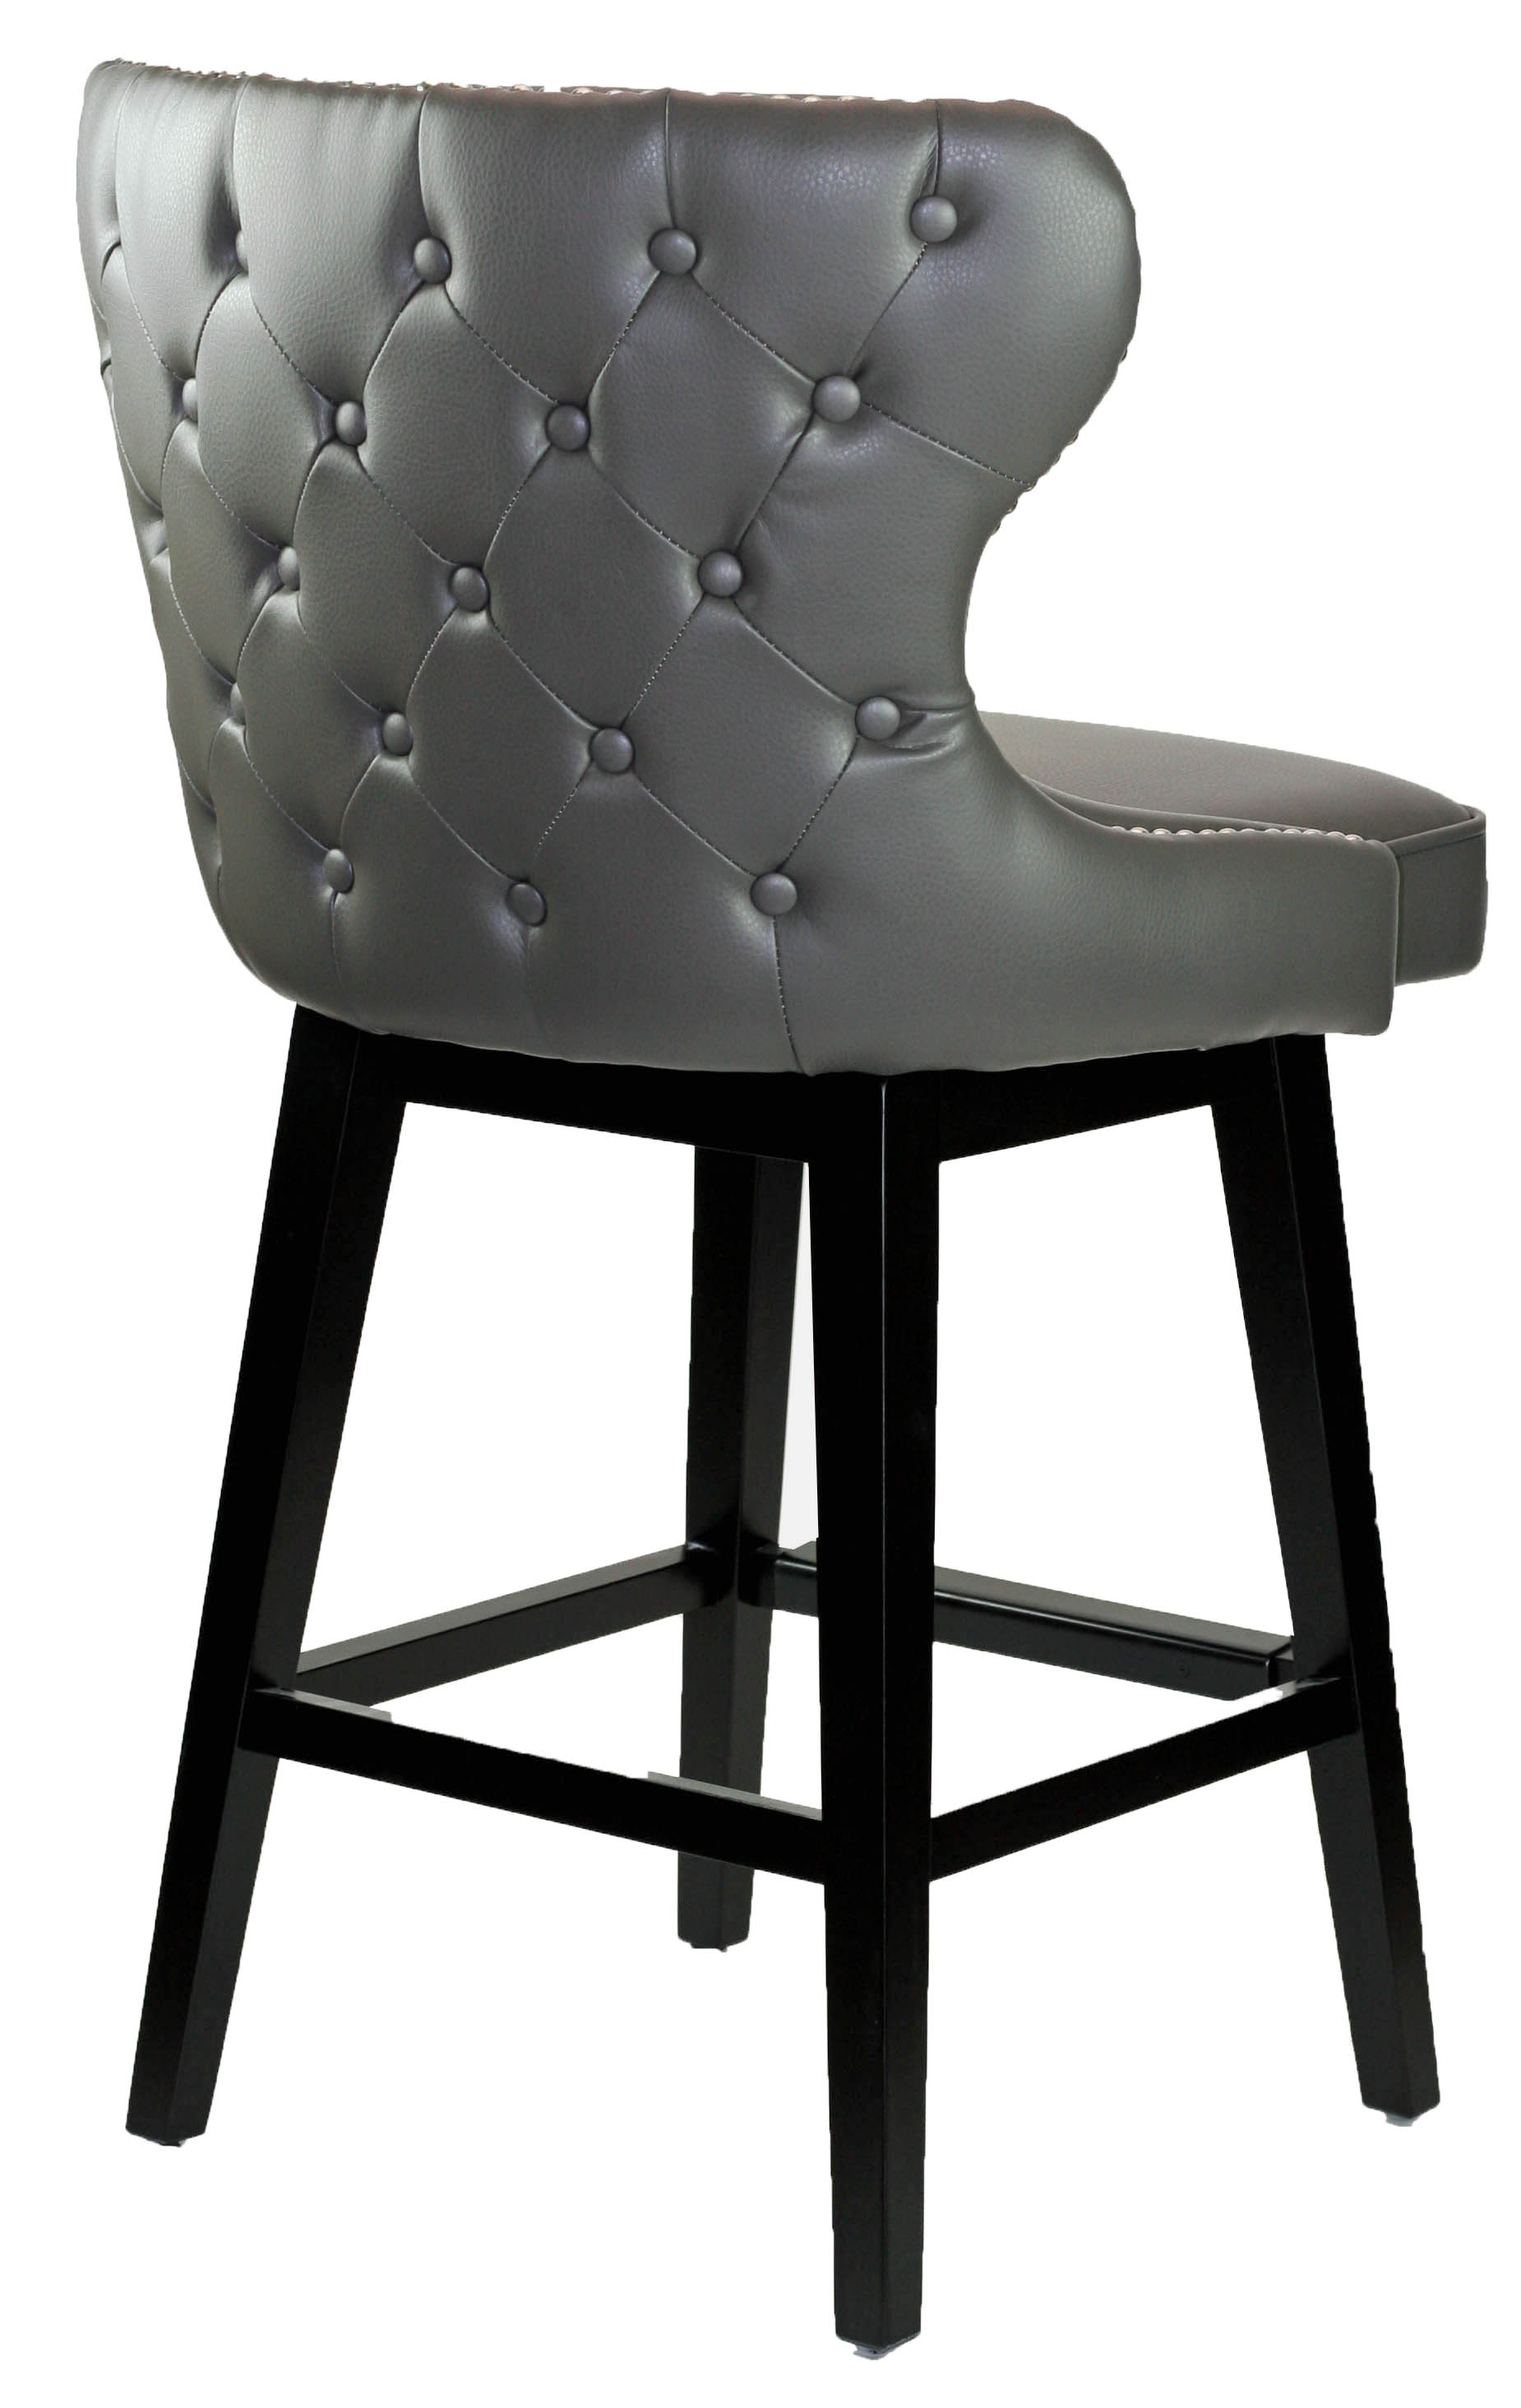 Bar Stools Amp Kitchen Counter Stools R 8707 Grey Leather